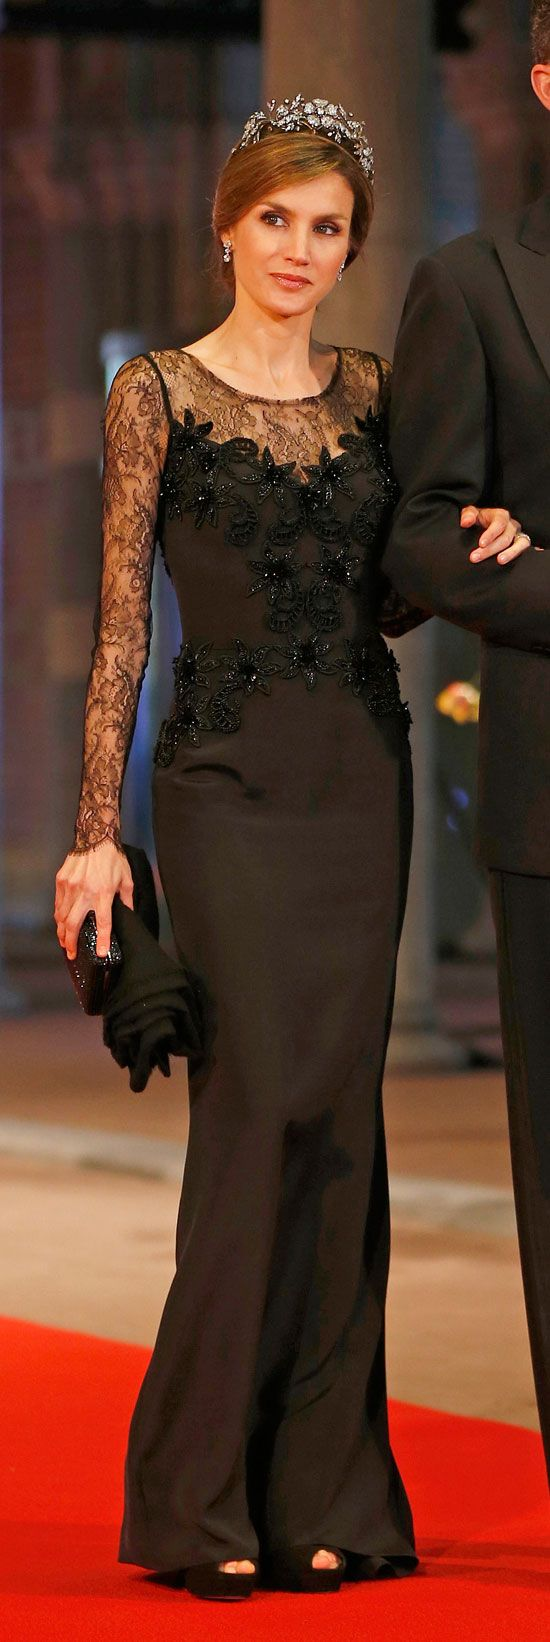 Queen Letizia in Felipe Varela. Letizia of Spain attends a dinner hosted by Beatrix of The Netherlans ahead of her abdication. Cena previa a la investidura de los reyes de Holanda.